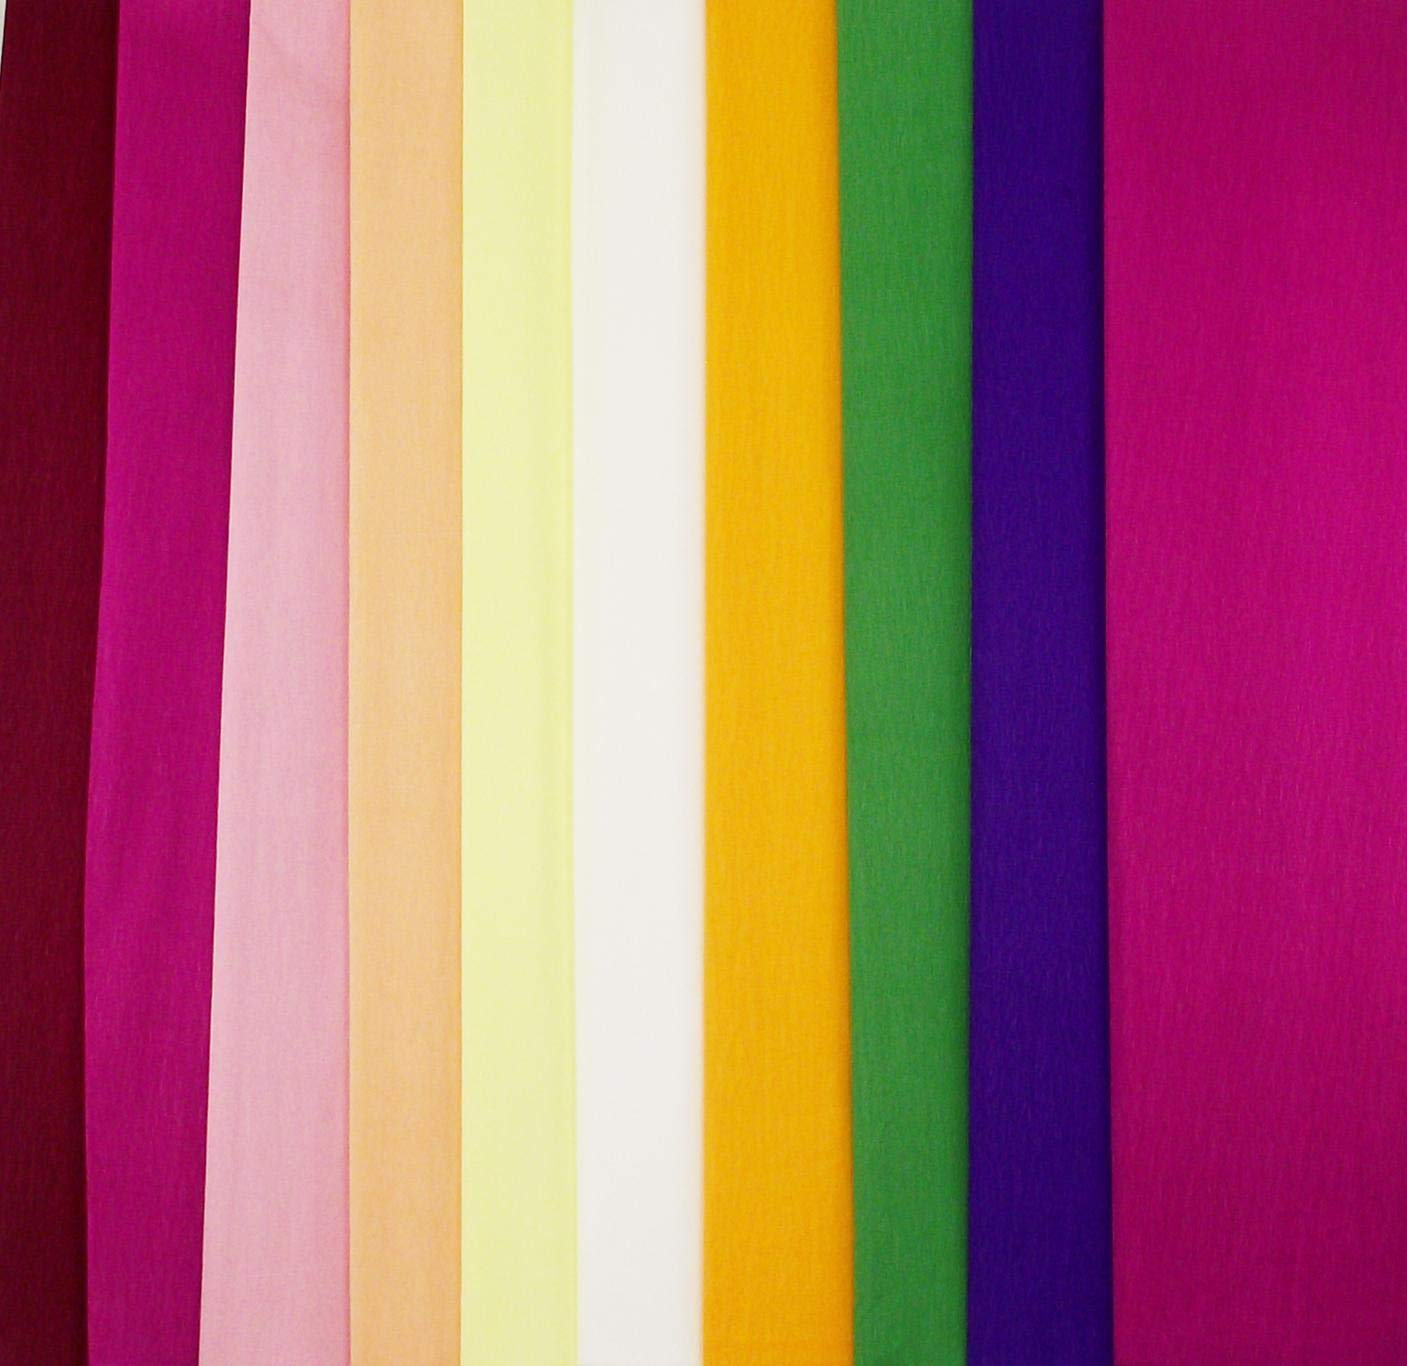 Shades of Purple 10 pcs Assorted Colors - 20 inches Wide by 6.2 ft Long Crepe Paper Folds Mexican Crepe Paper